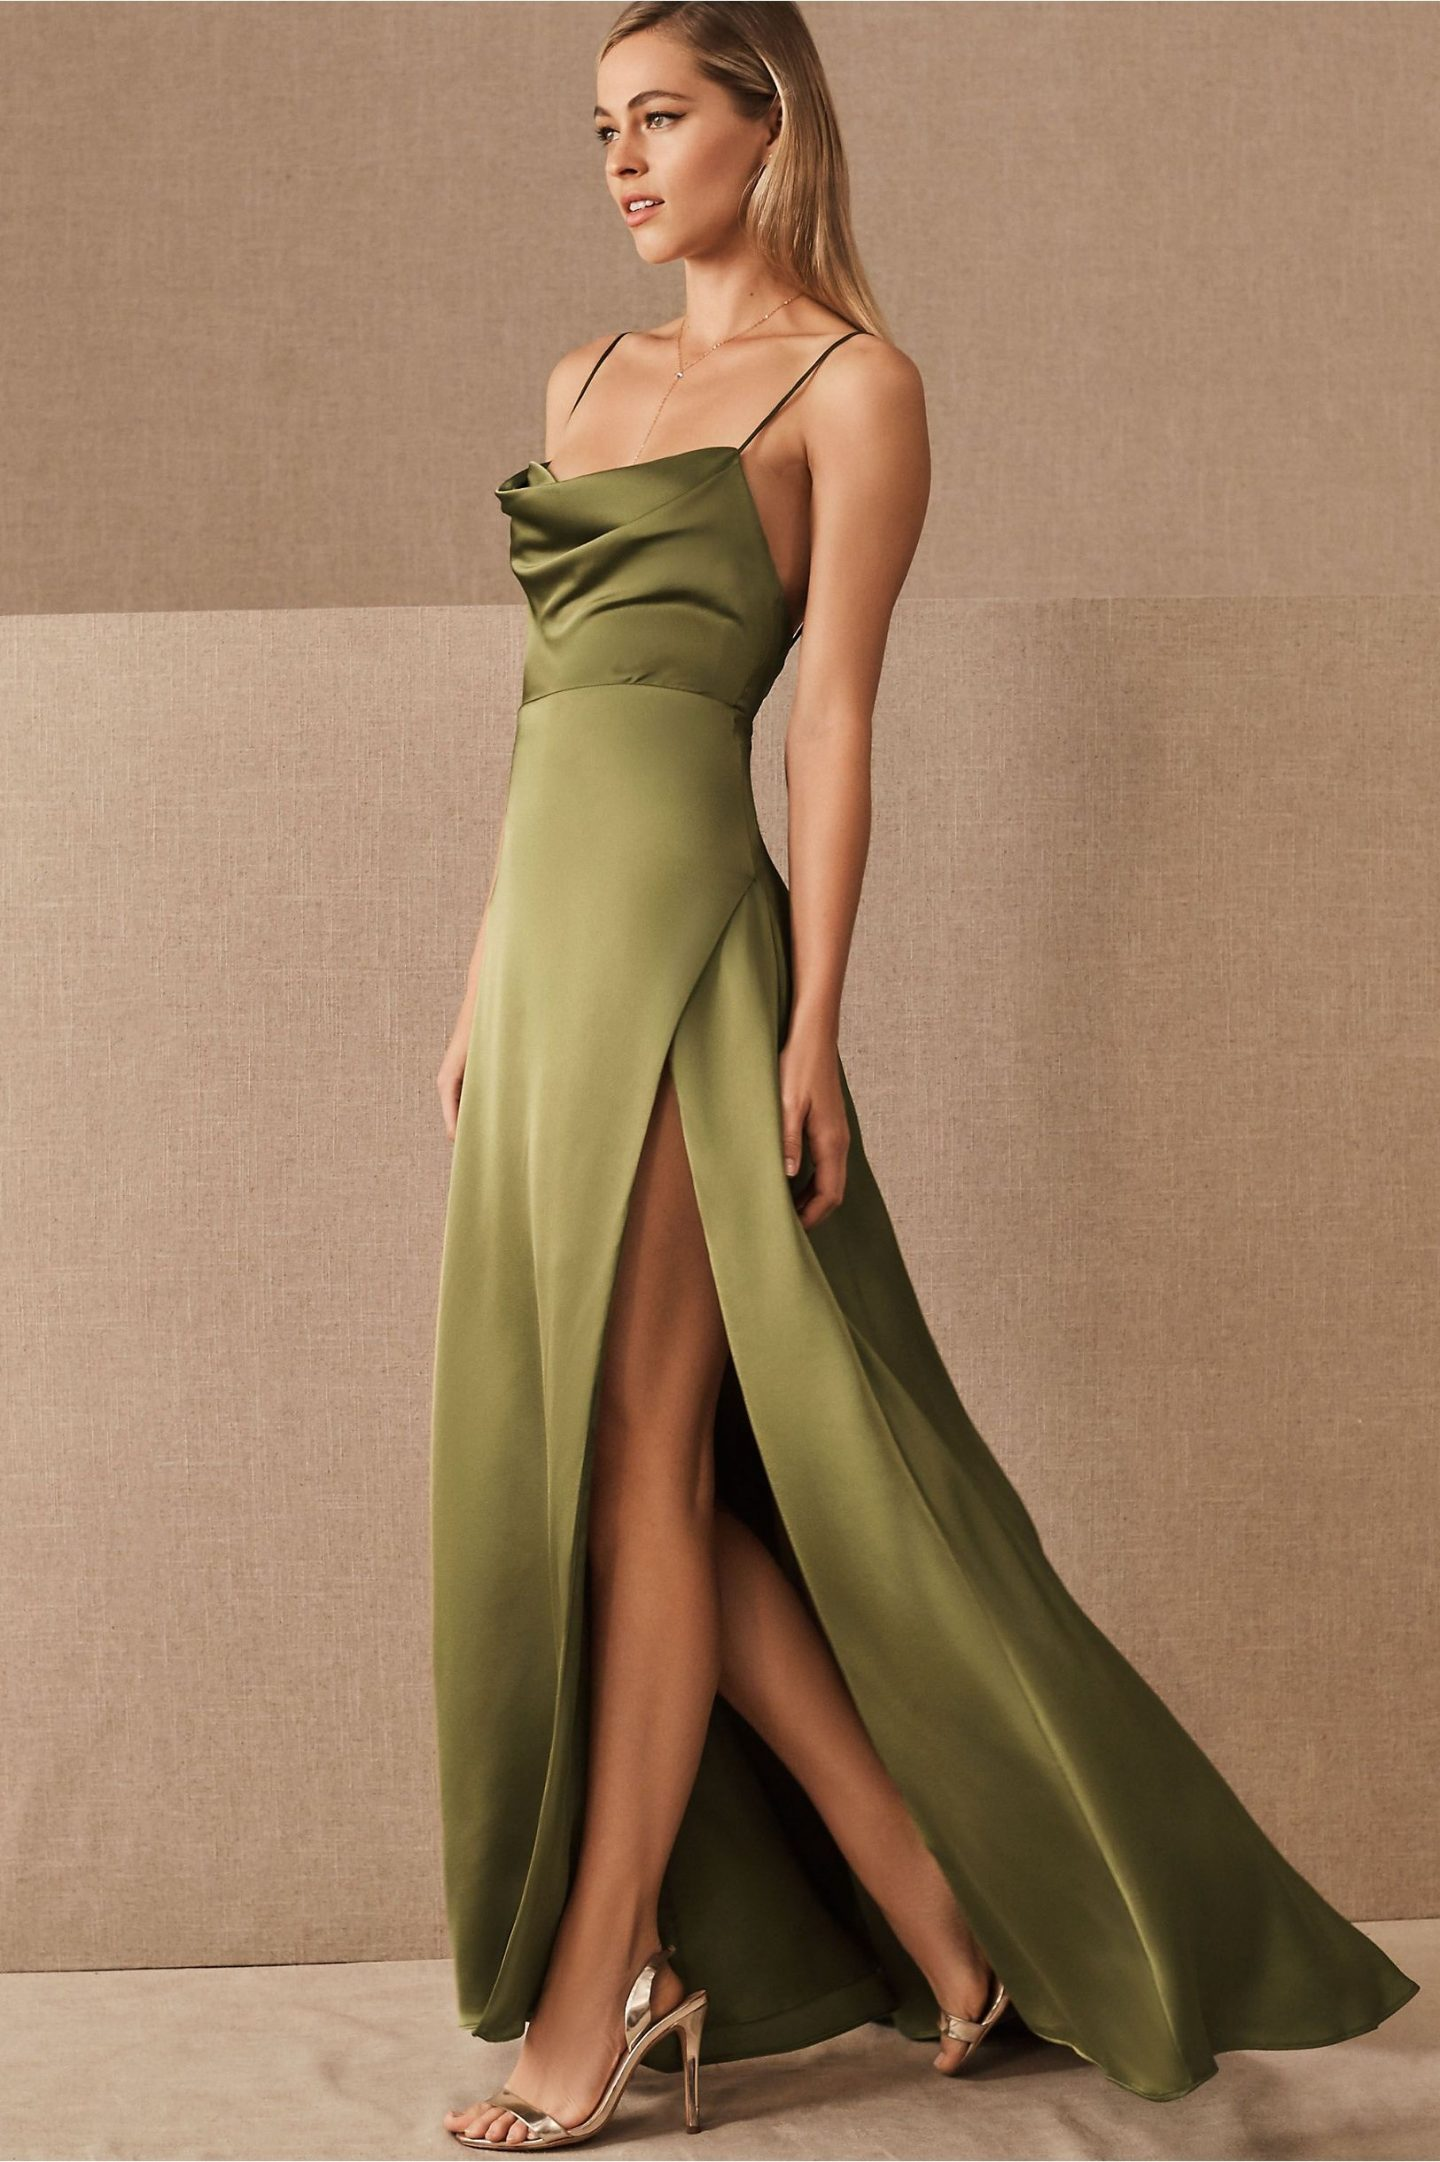 Olive green prom dress with slit